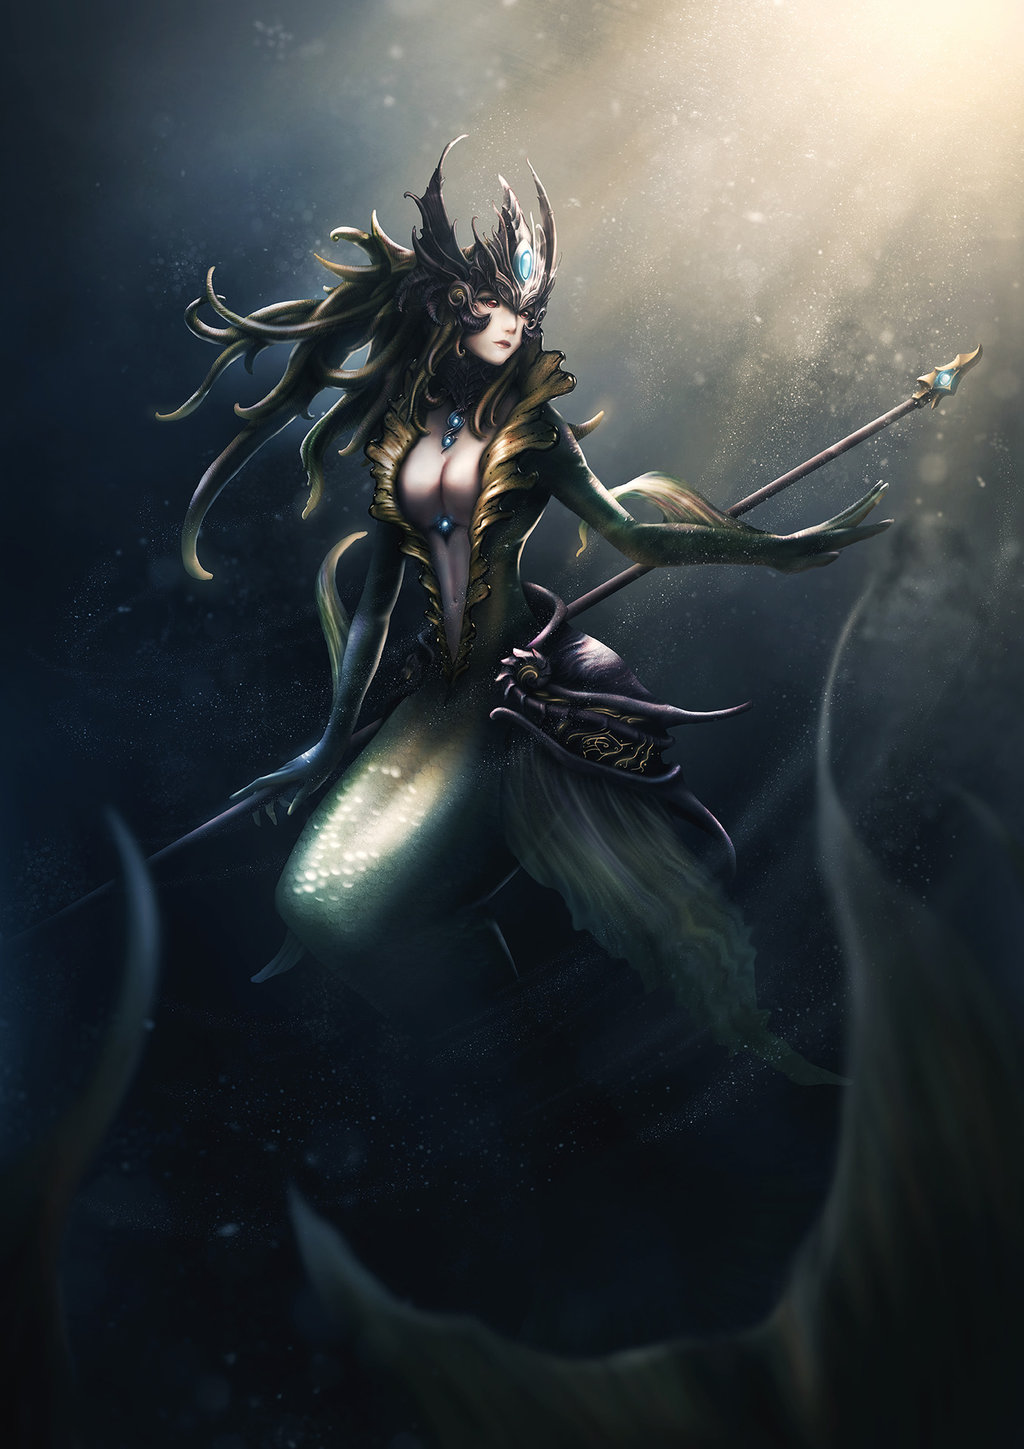 31 Pantheon League Of Legends HD Wallpapers and Background Images Download for free on all your devices  Computer Smartphone or Tablet  Wallpaper Abyss